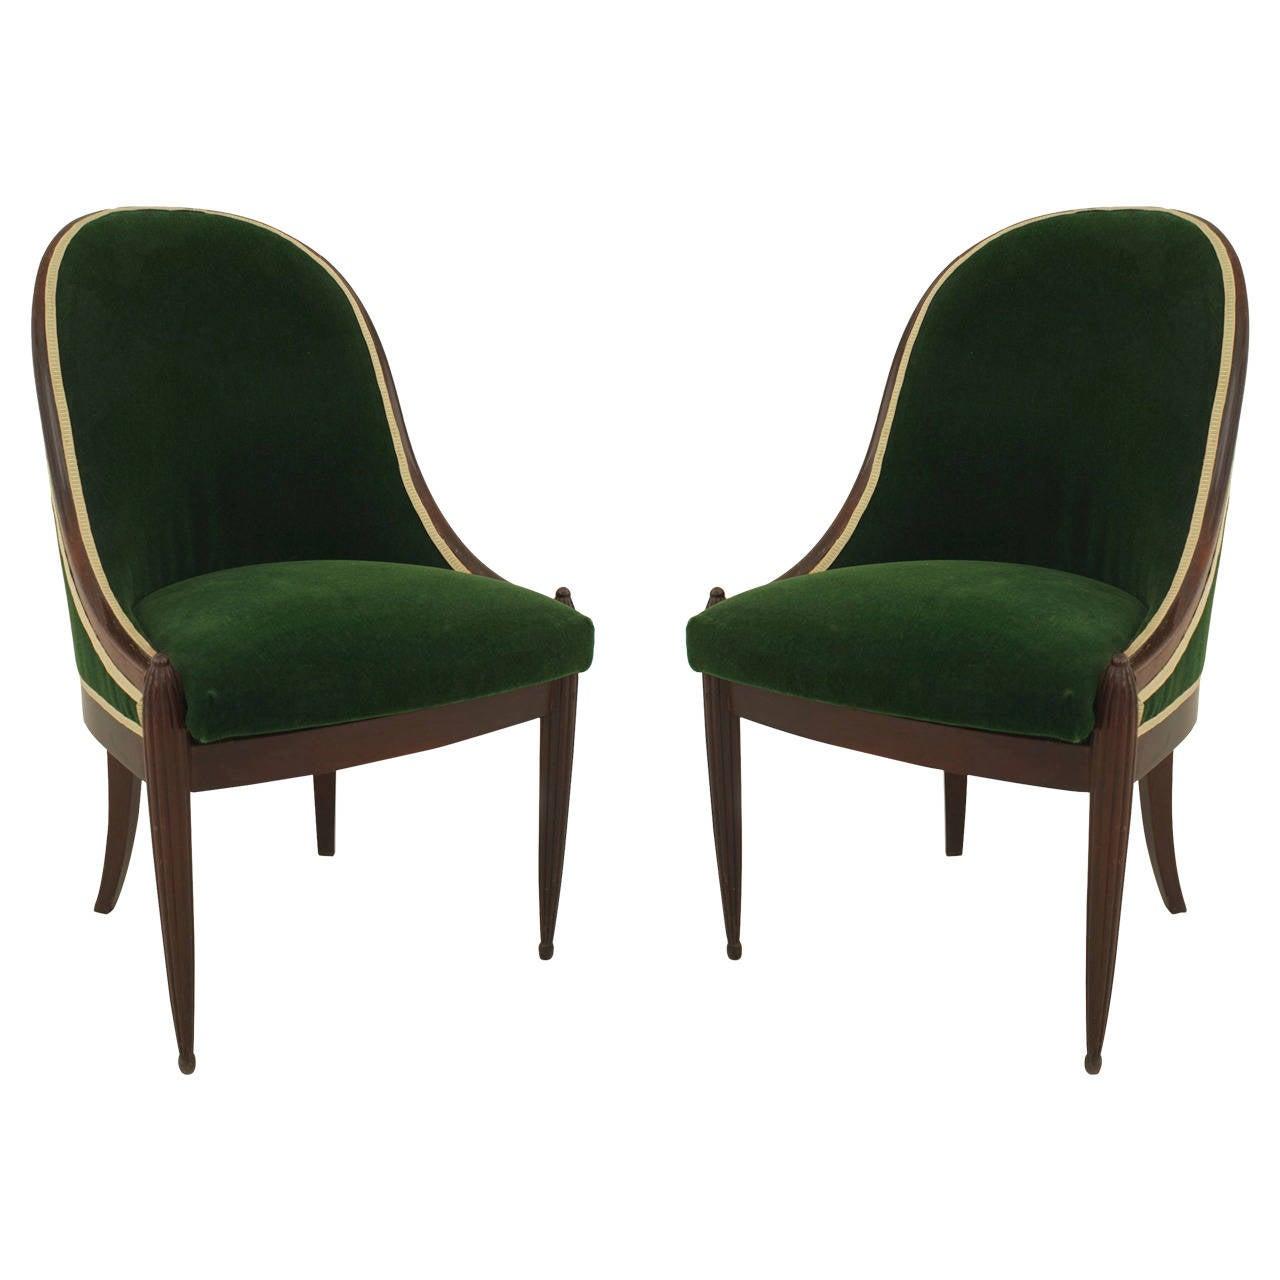 Artistic Chairs Pair Of French Art Deco Green Velvet Upholstered Mahogany